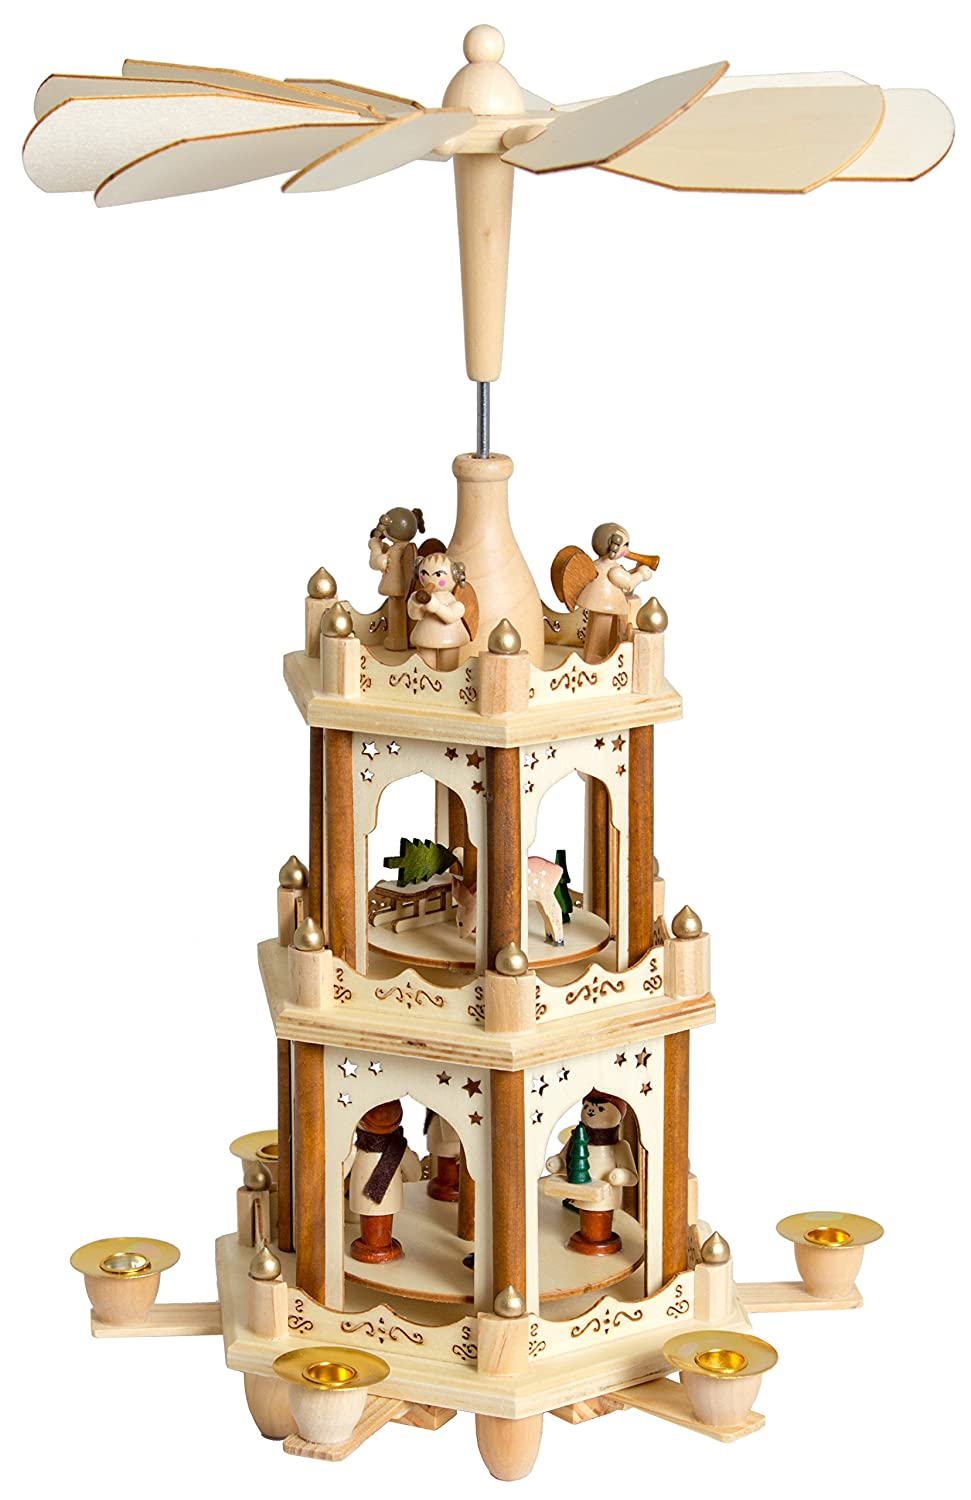 amazoncom brubaker christmas decoration pyramid 18 inches wood nativity play 3 tier carousel with 6 candle holders home kitchen